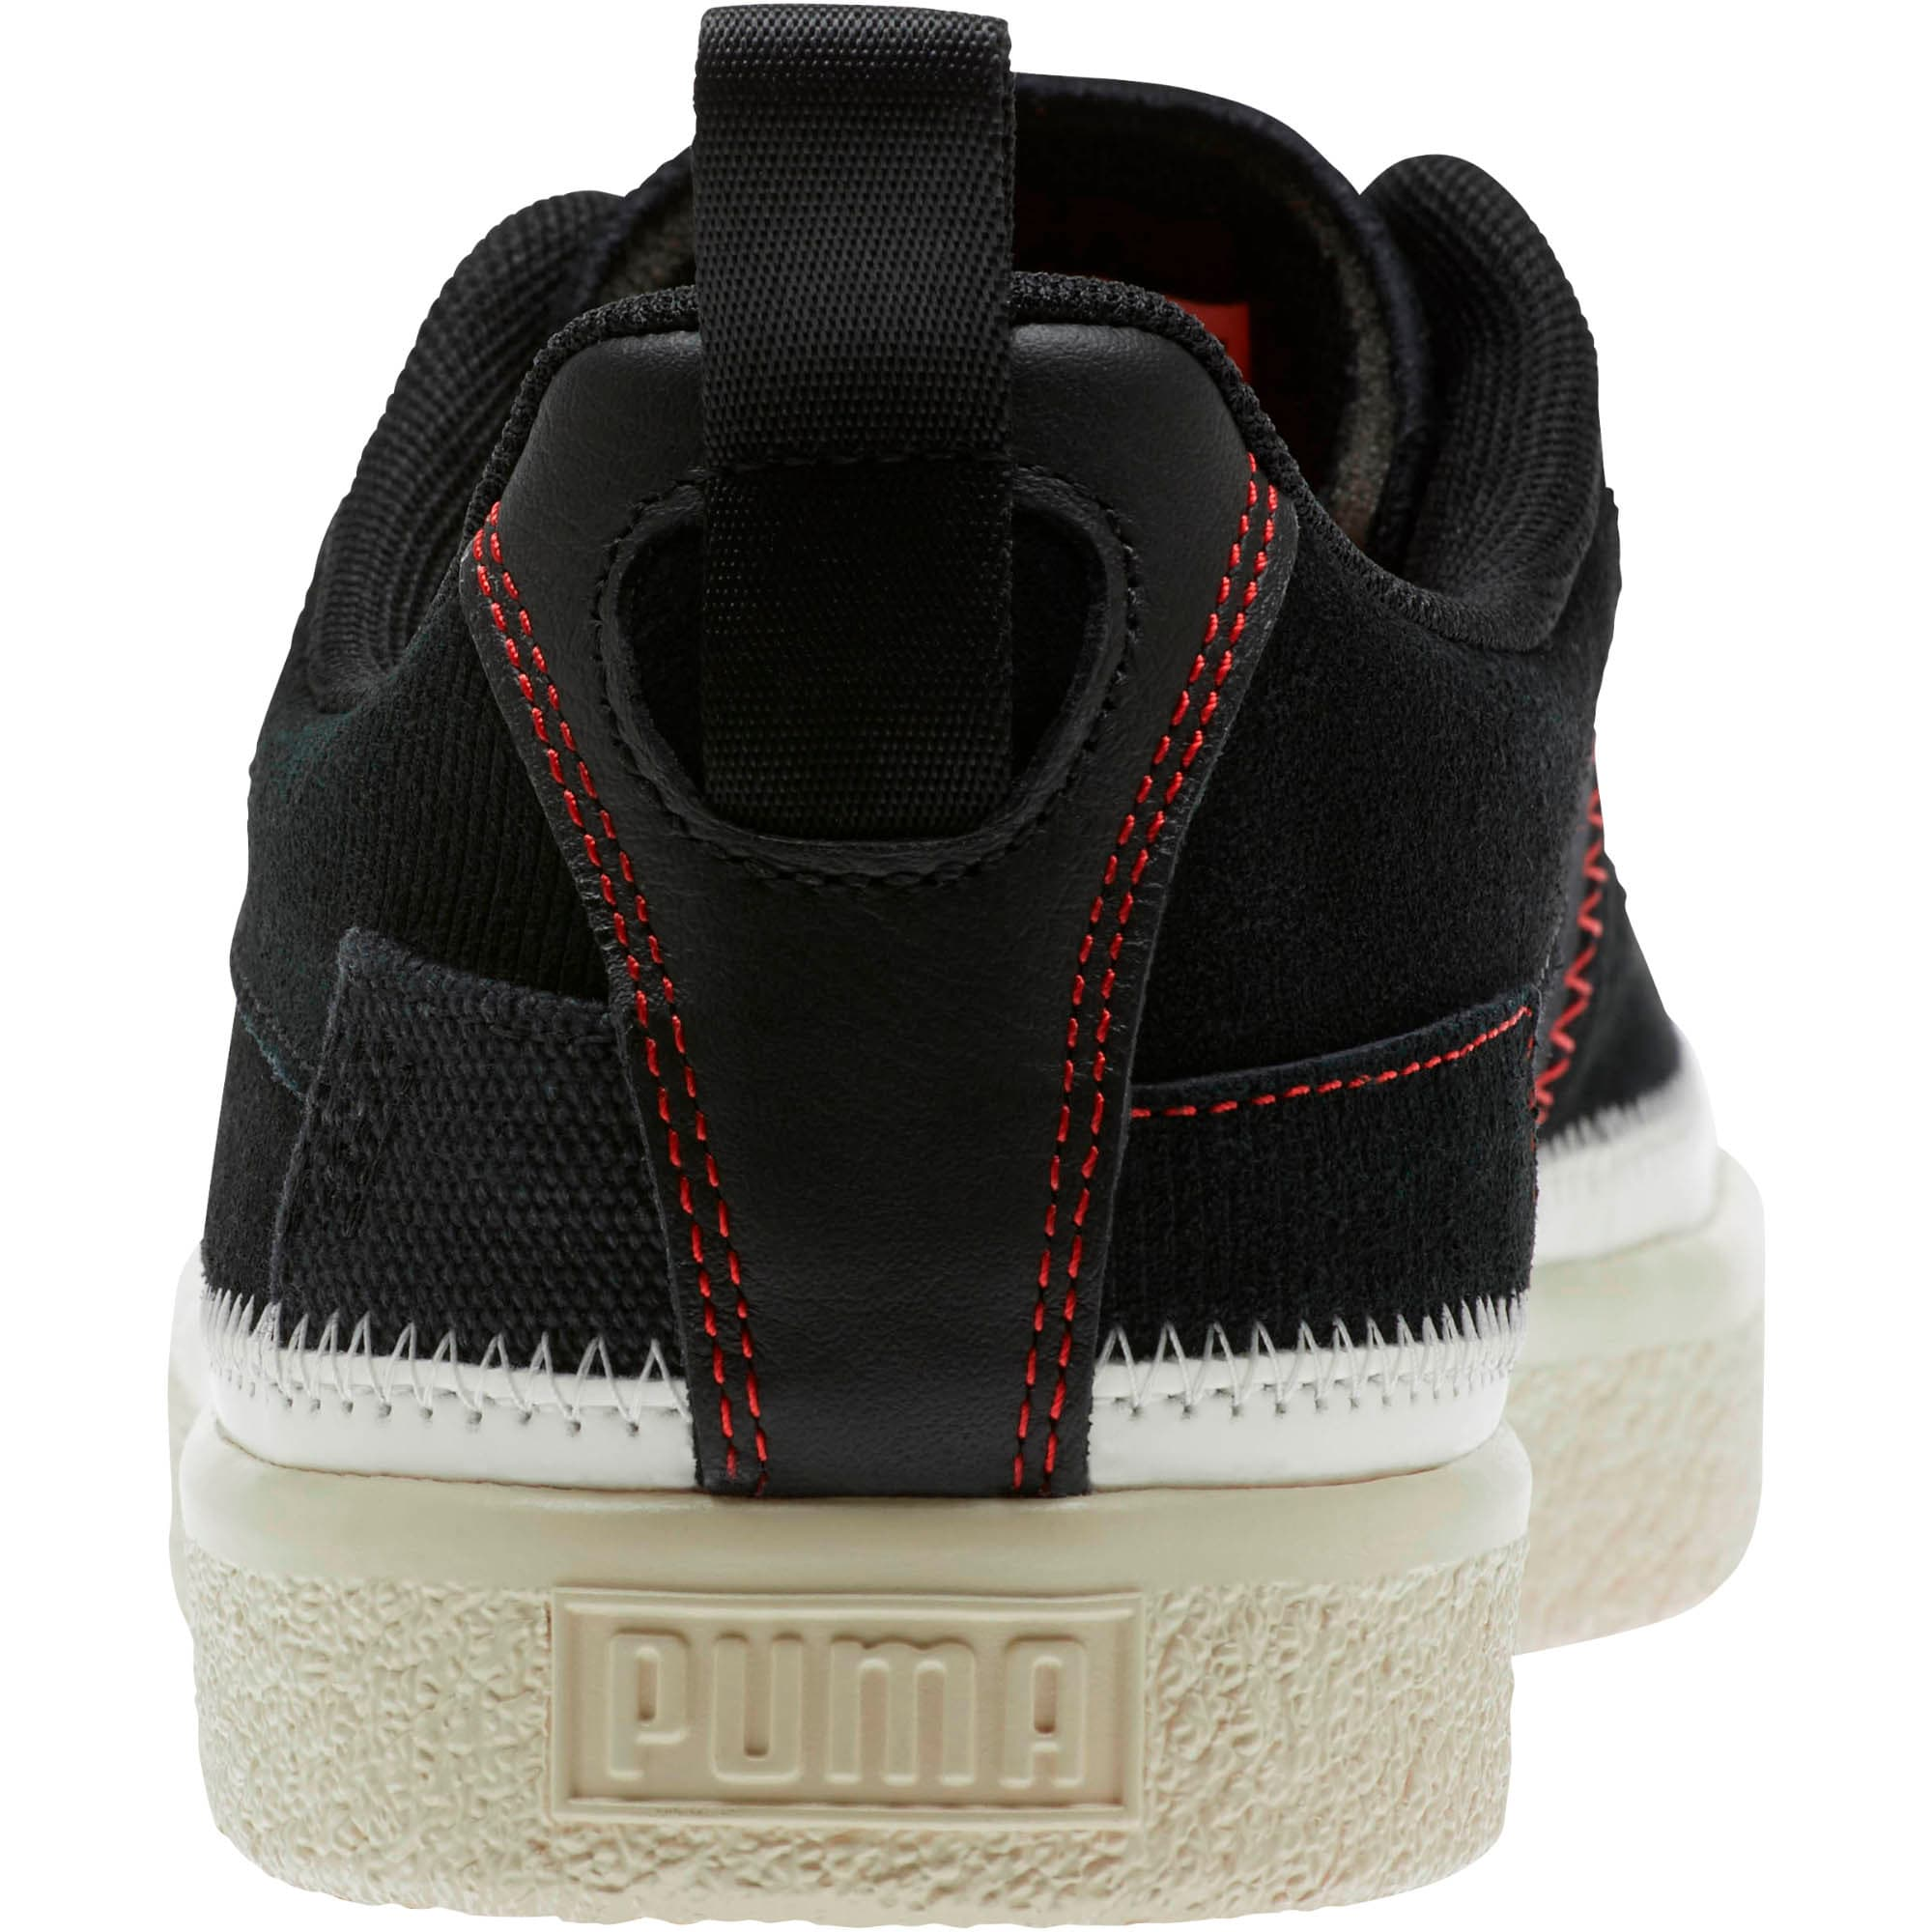 Thumbnail 3 of Clyde #REFORM Sneakers, Black-Whisper White- Red, medium